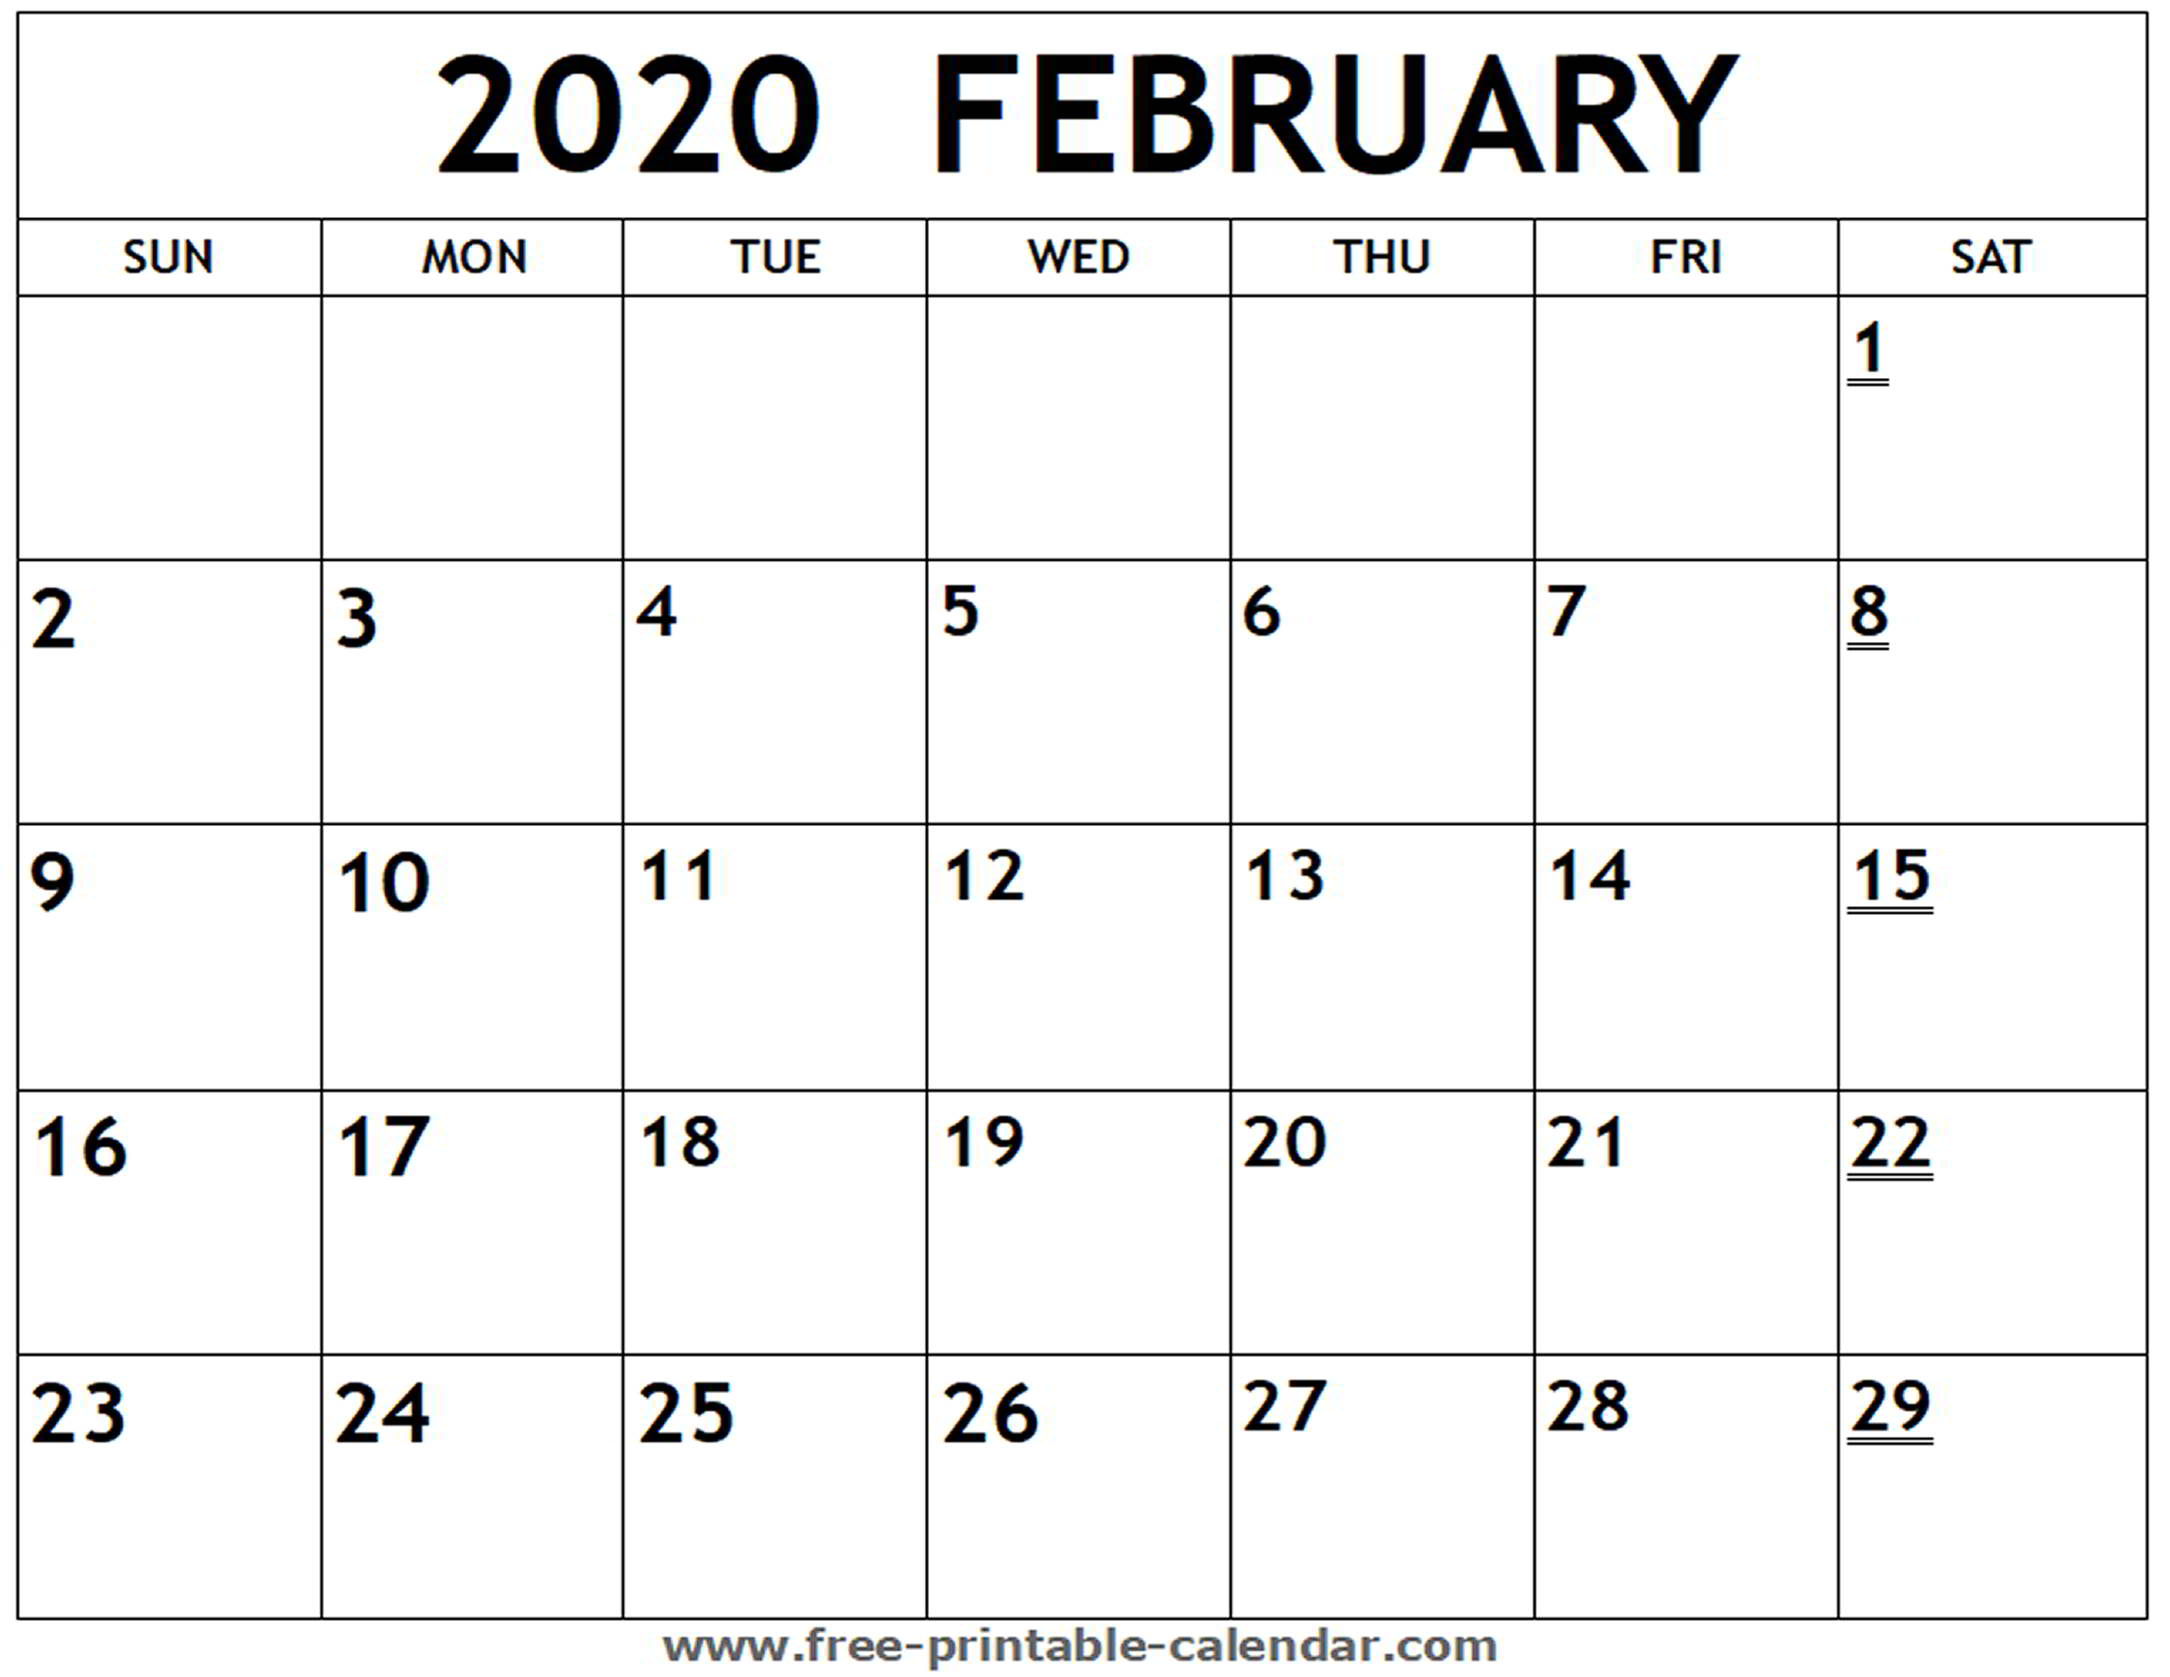 Printable 2020 February Calendar - Free-Printable-Calendar intended for Printable 2020 Calendar I Can Edit